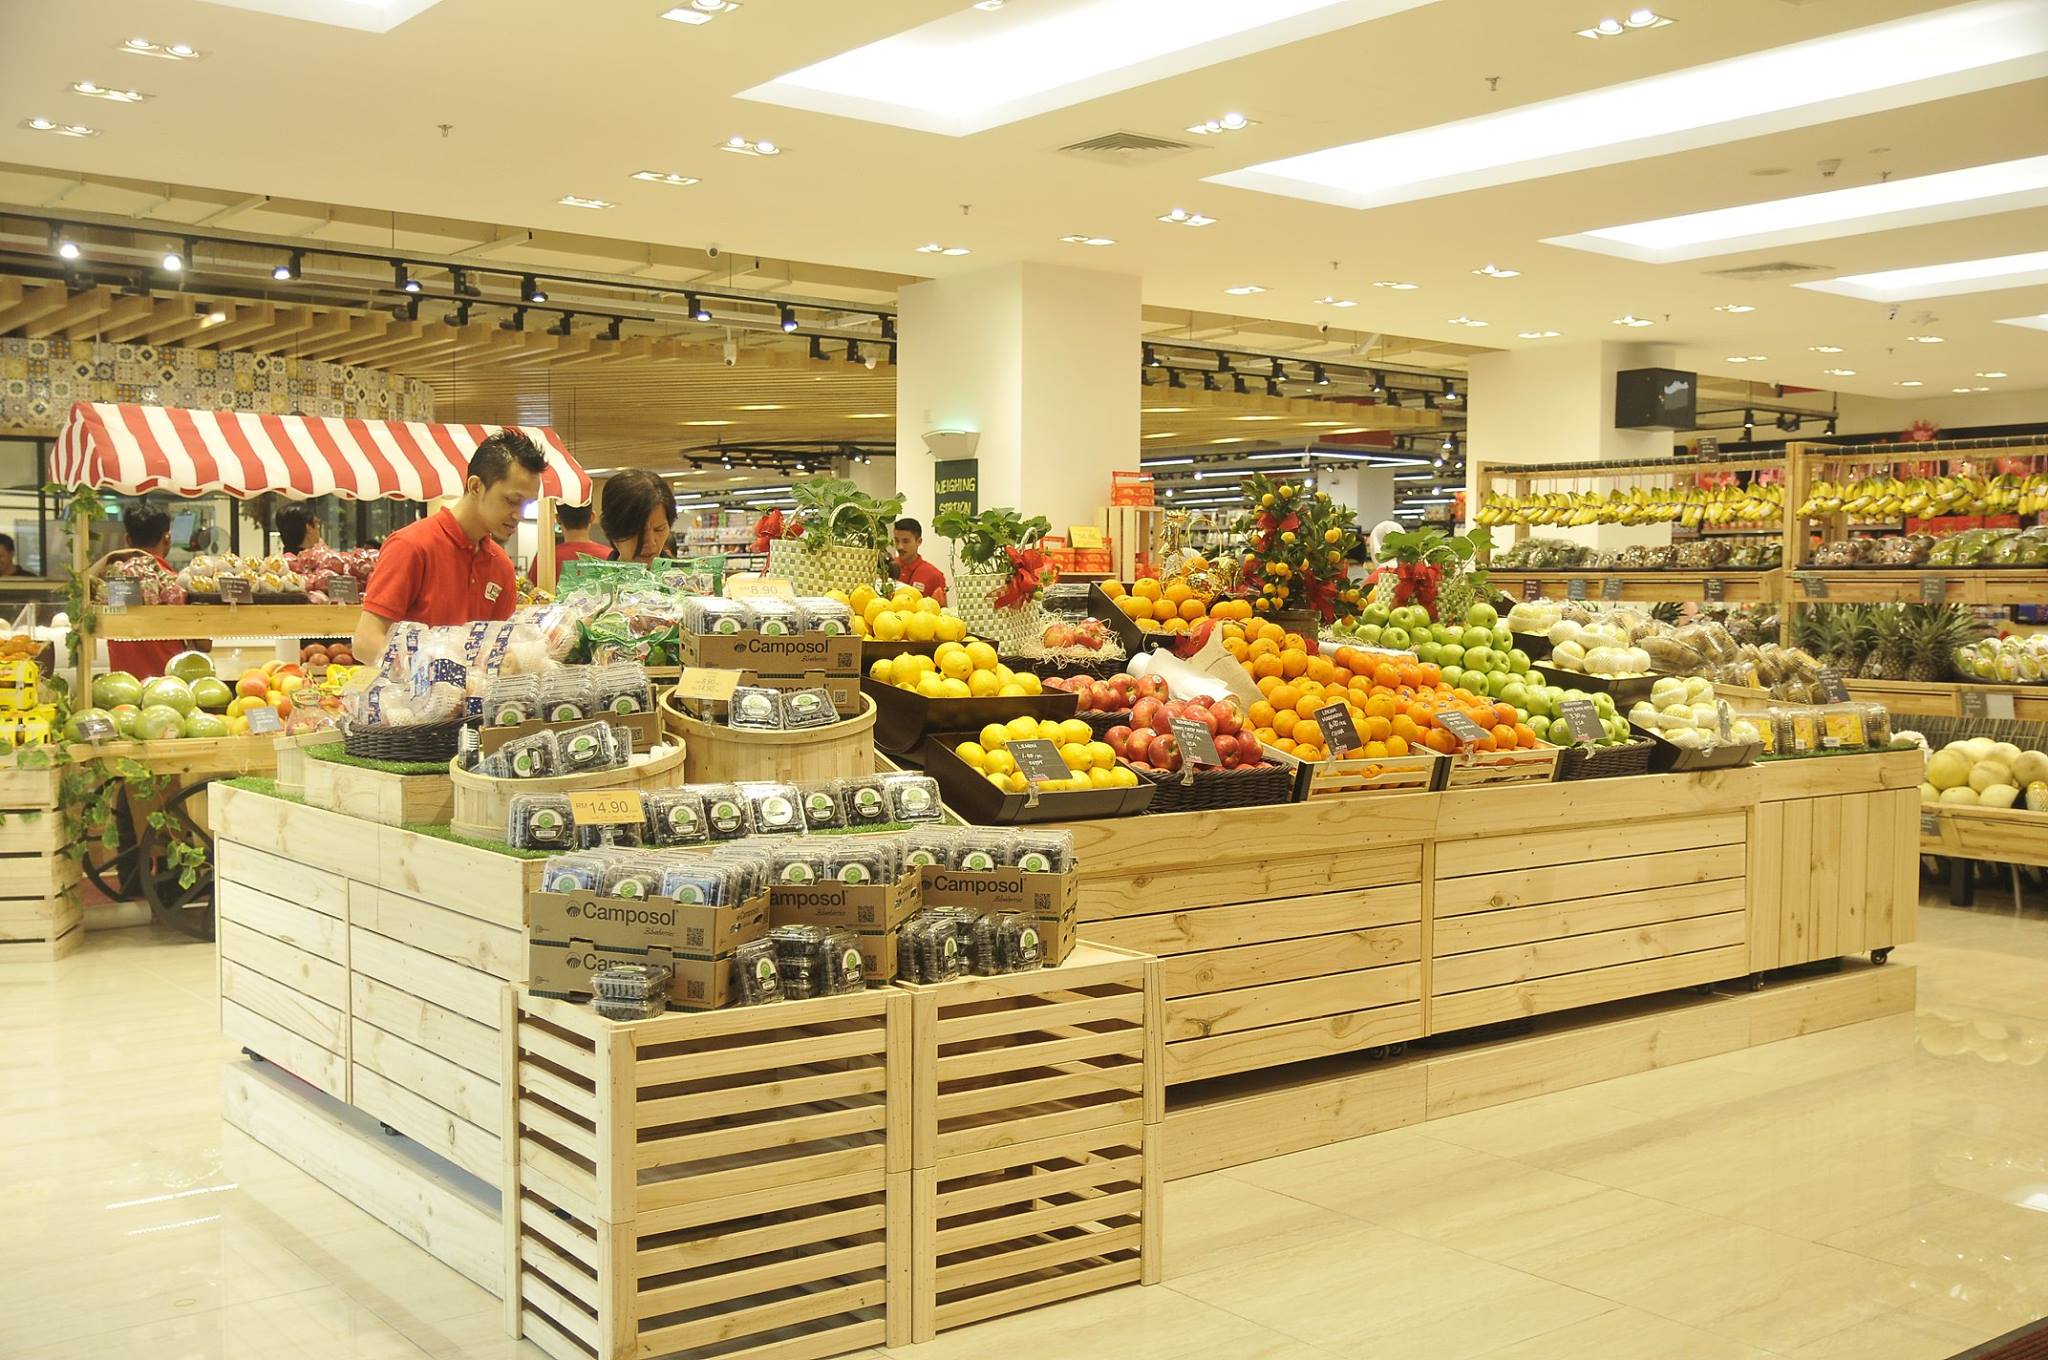 Image from Jaya Grocer